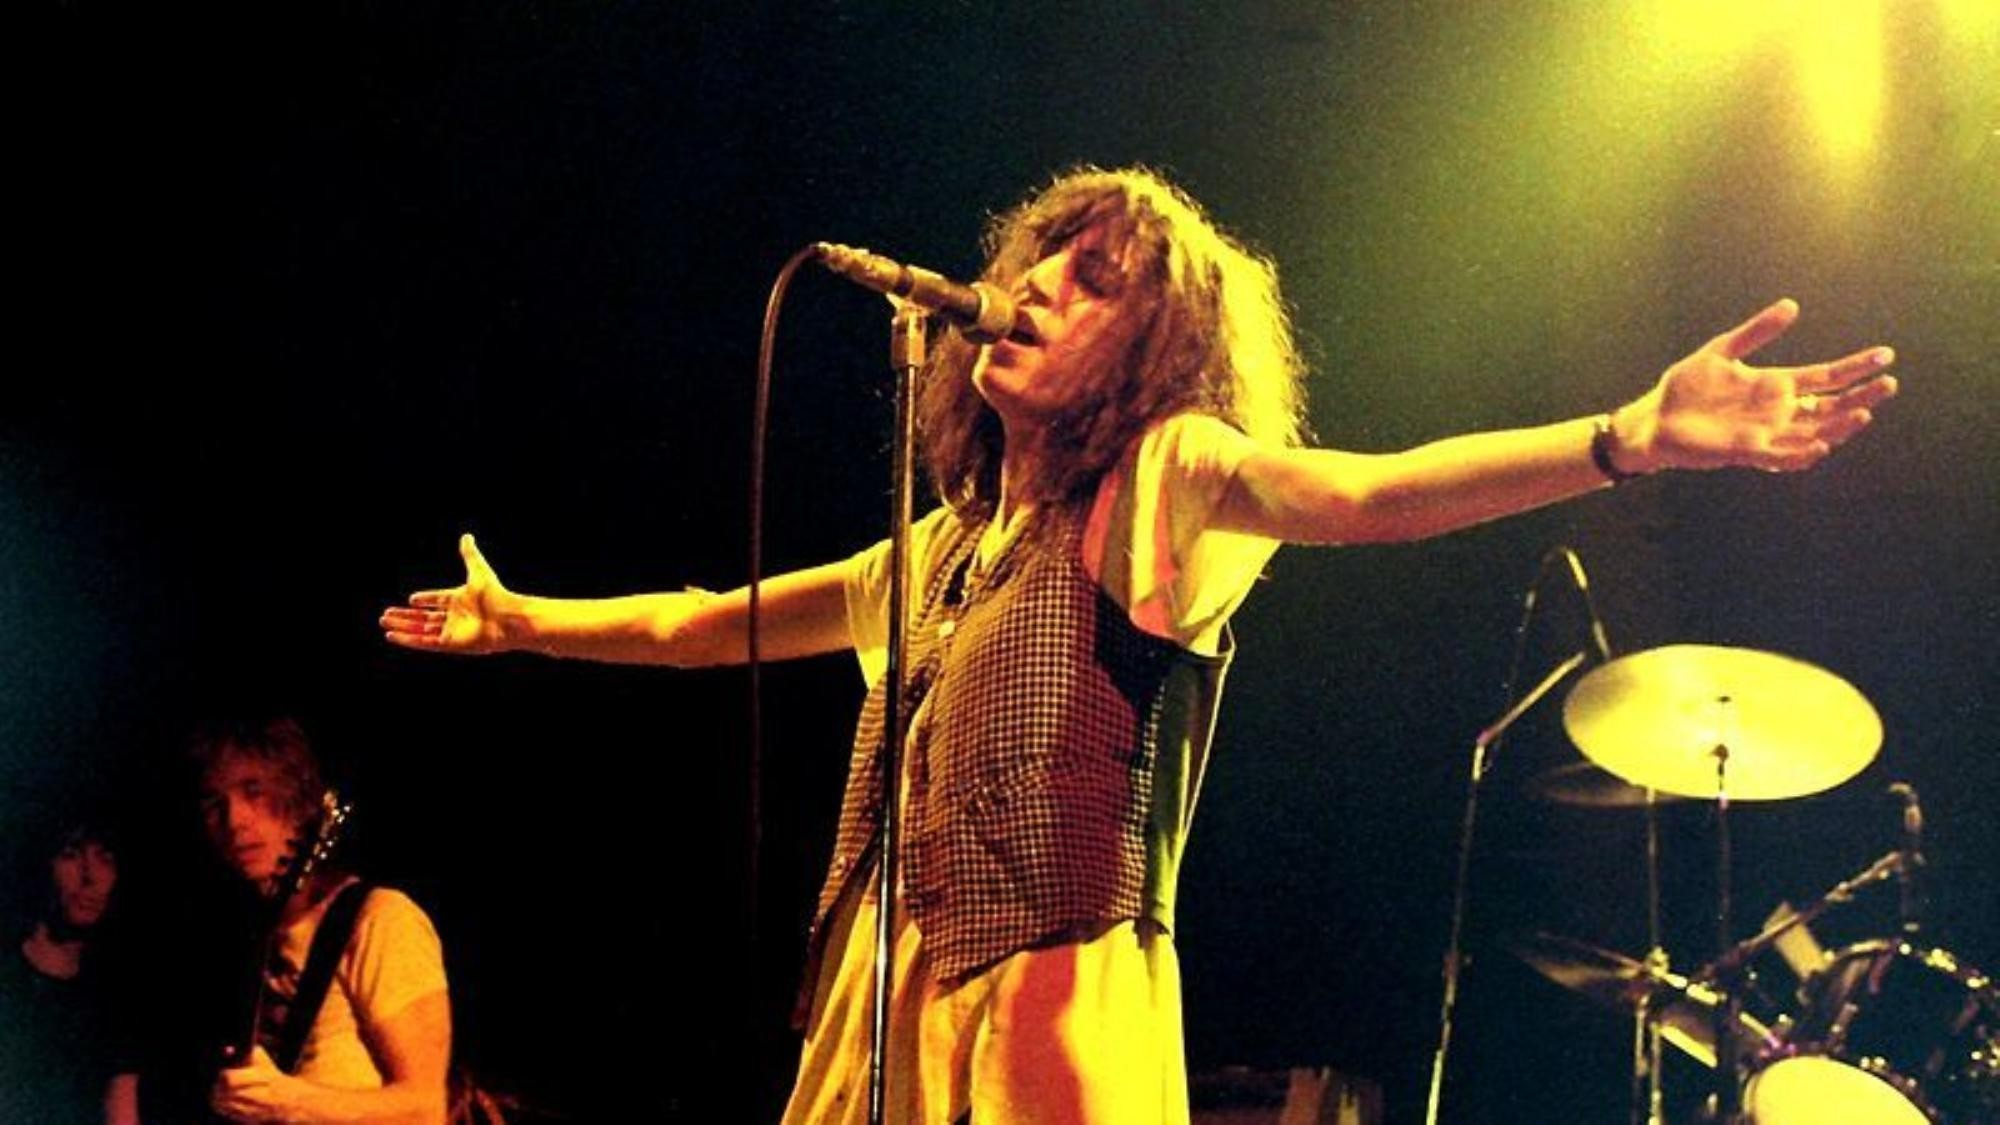 patti smith wrote a wonderful essay about fumbling her bob